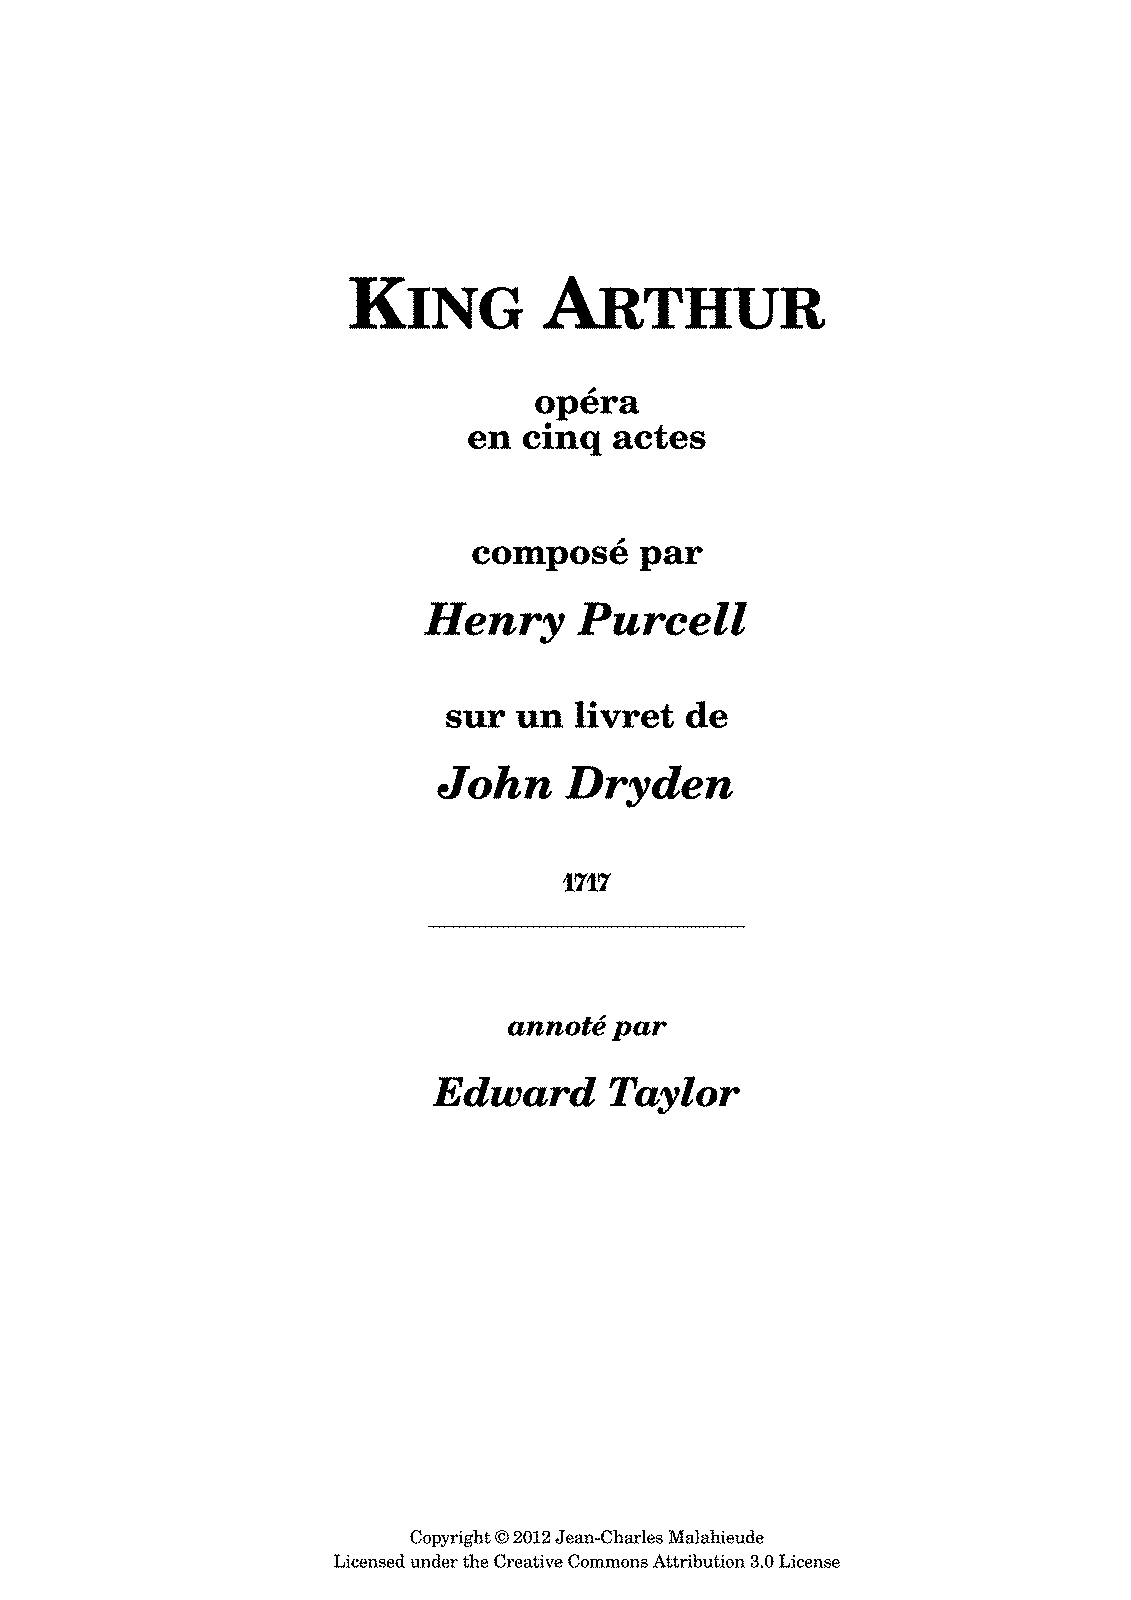 PMLP69503-Purcell Arthur-Conducteur.pdf